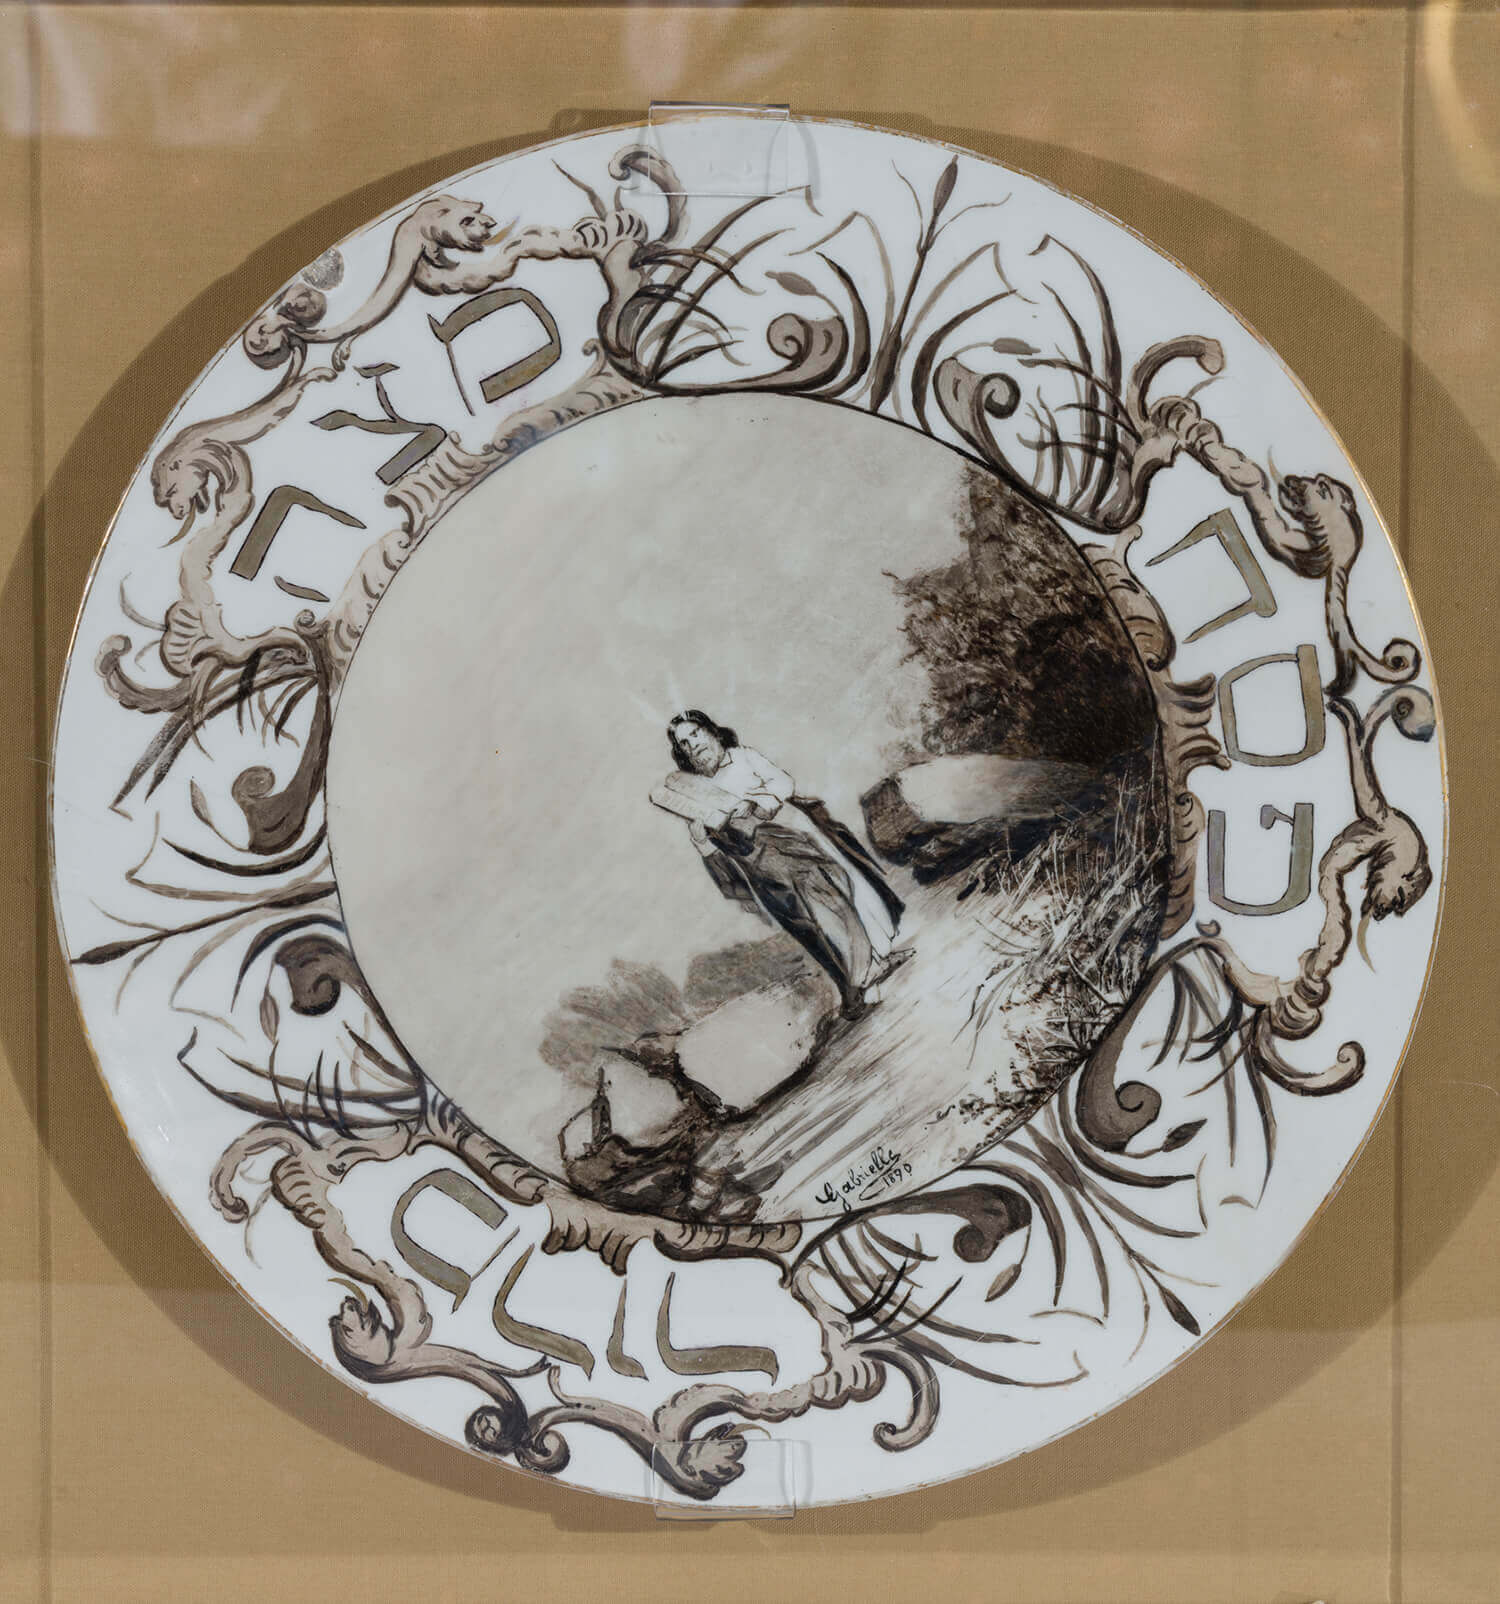 110. A HAND PAINTED PORCELAIN PASSOVER PLATE